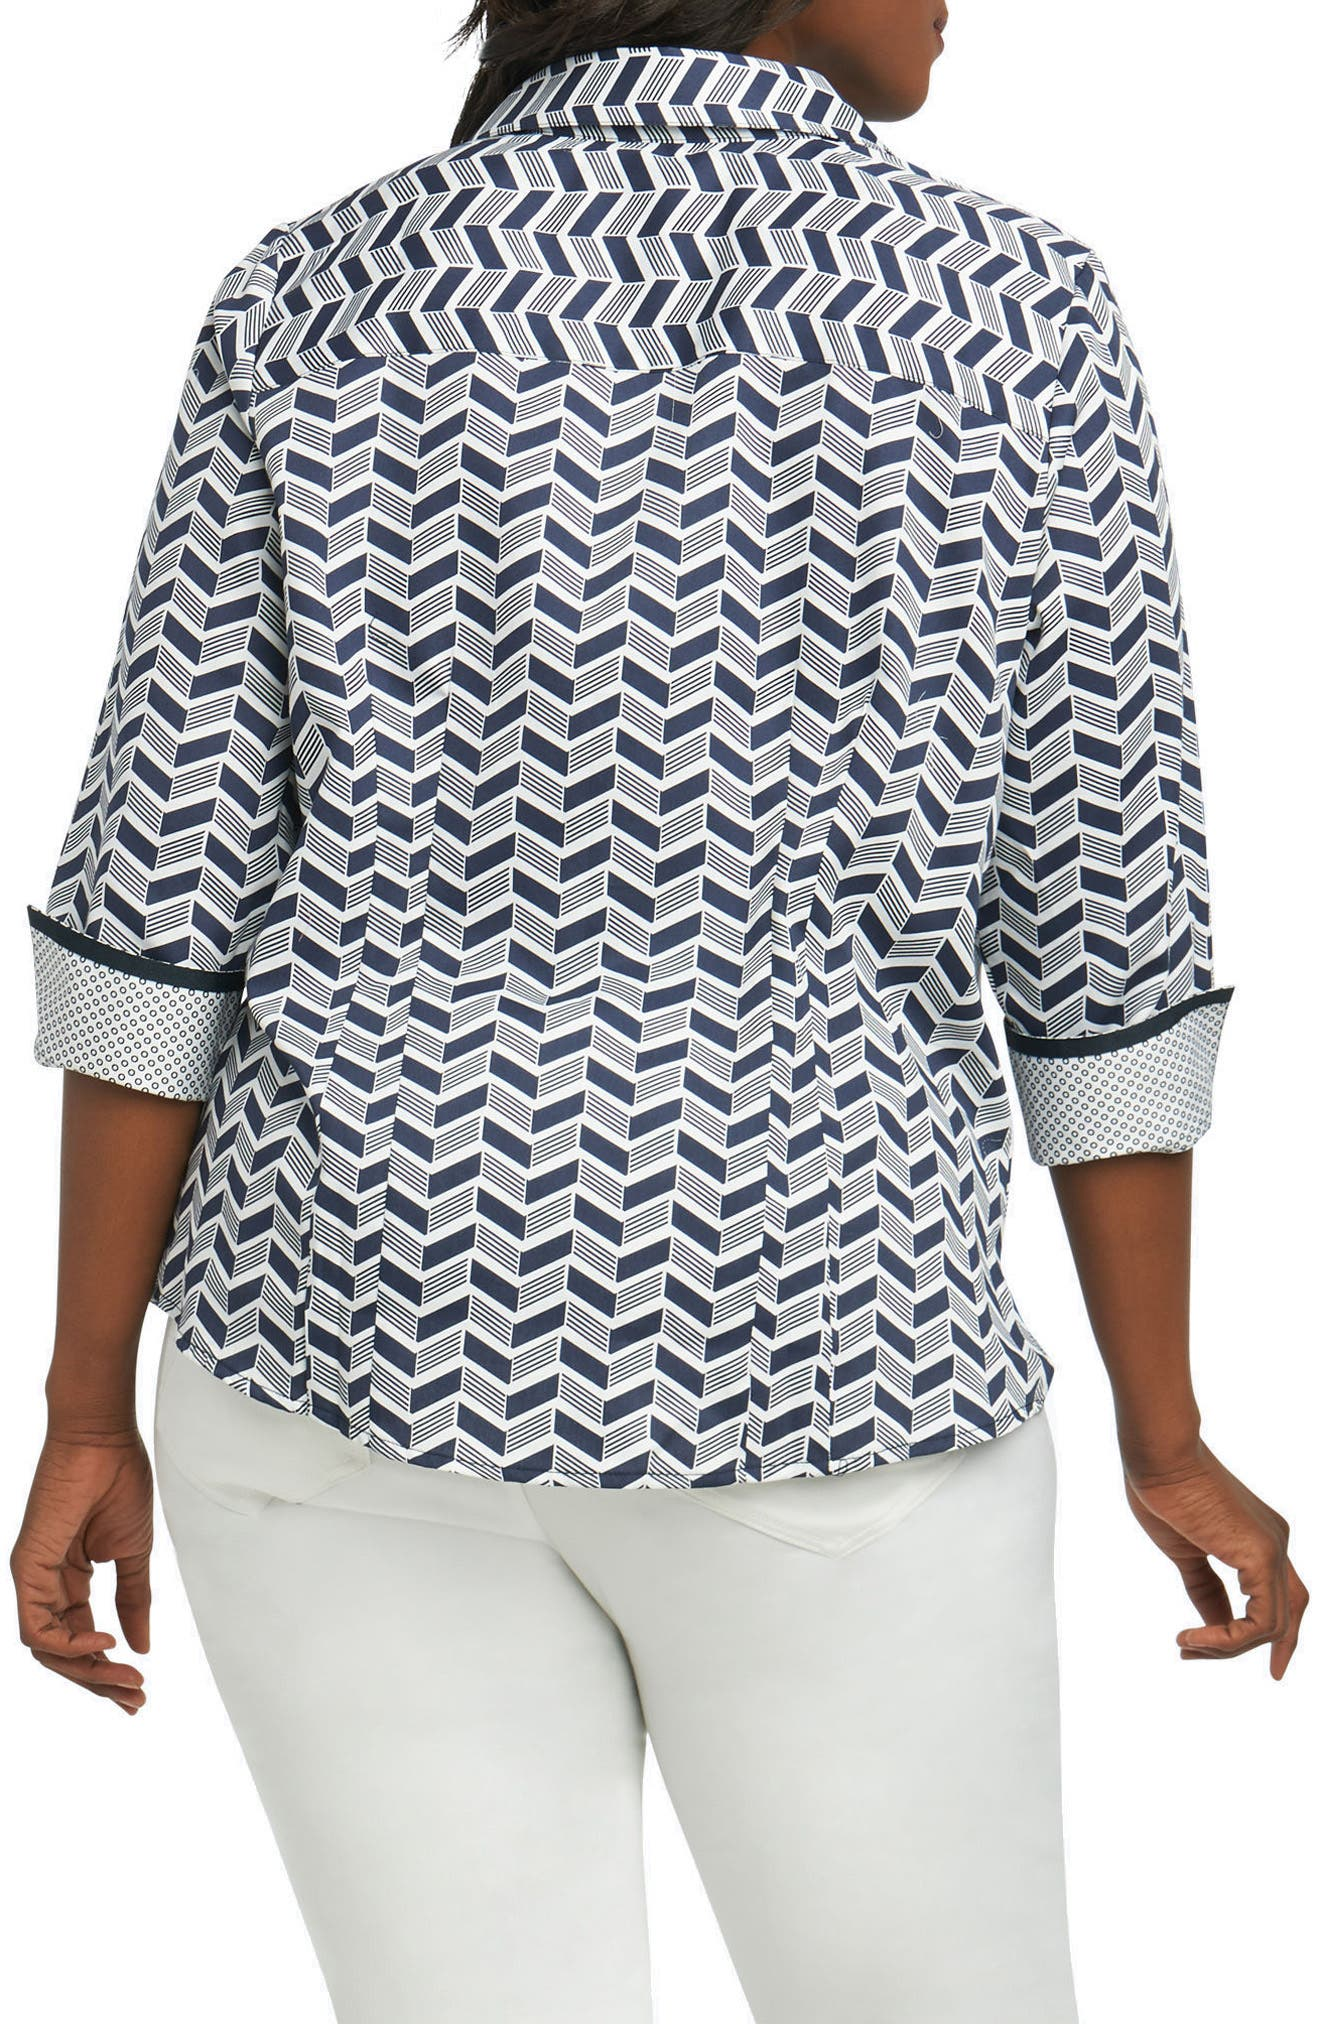 Taylor Chevron Non Iron Cotton Shirt,                             Alternate thumbnail 2, color,